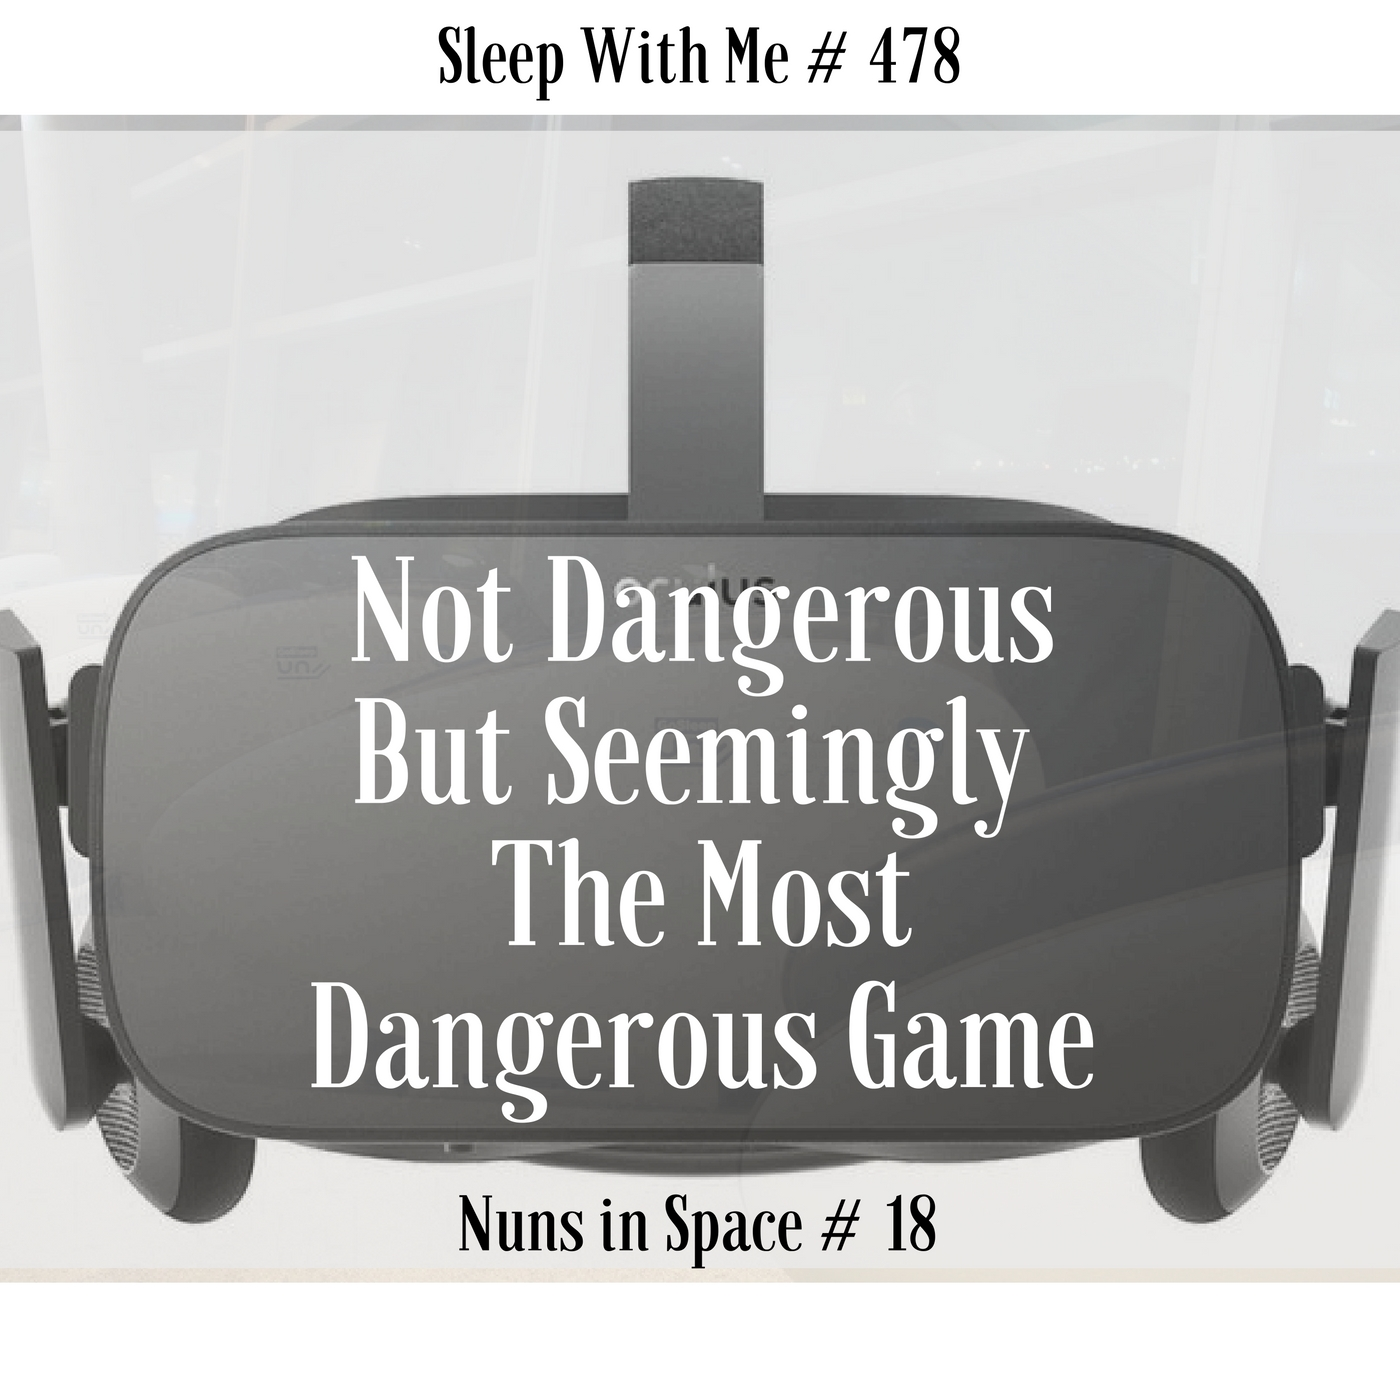 Not Dangerous But Seemingly Most Dangerous Game | Nuns in Space #18 | Sleep With Me #478